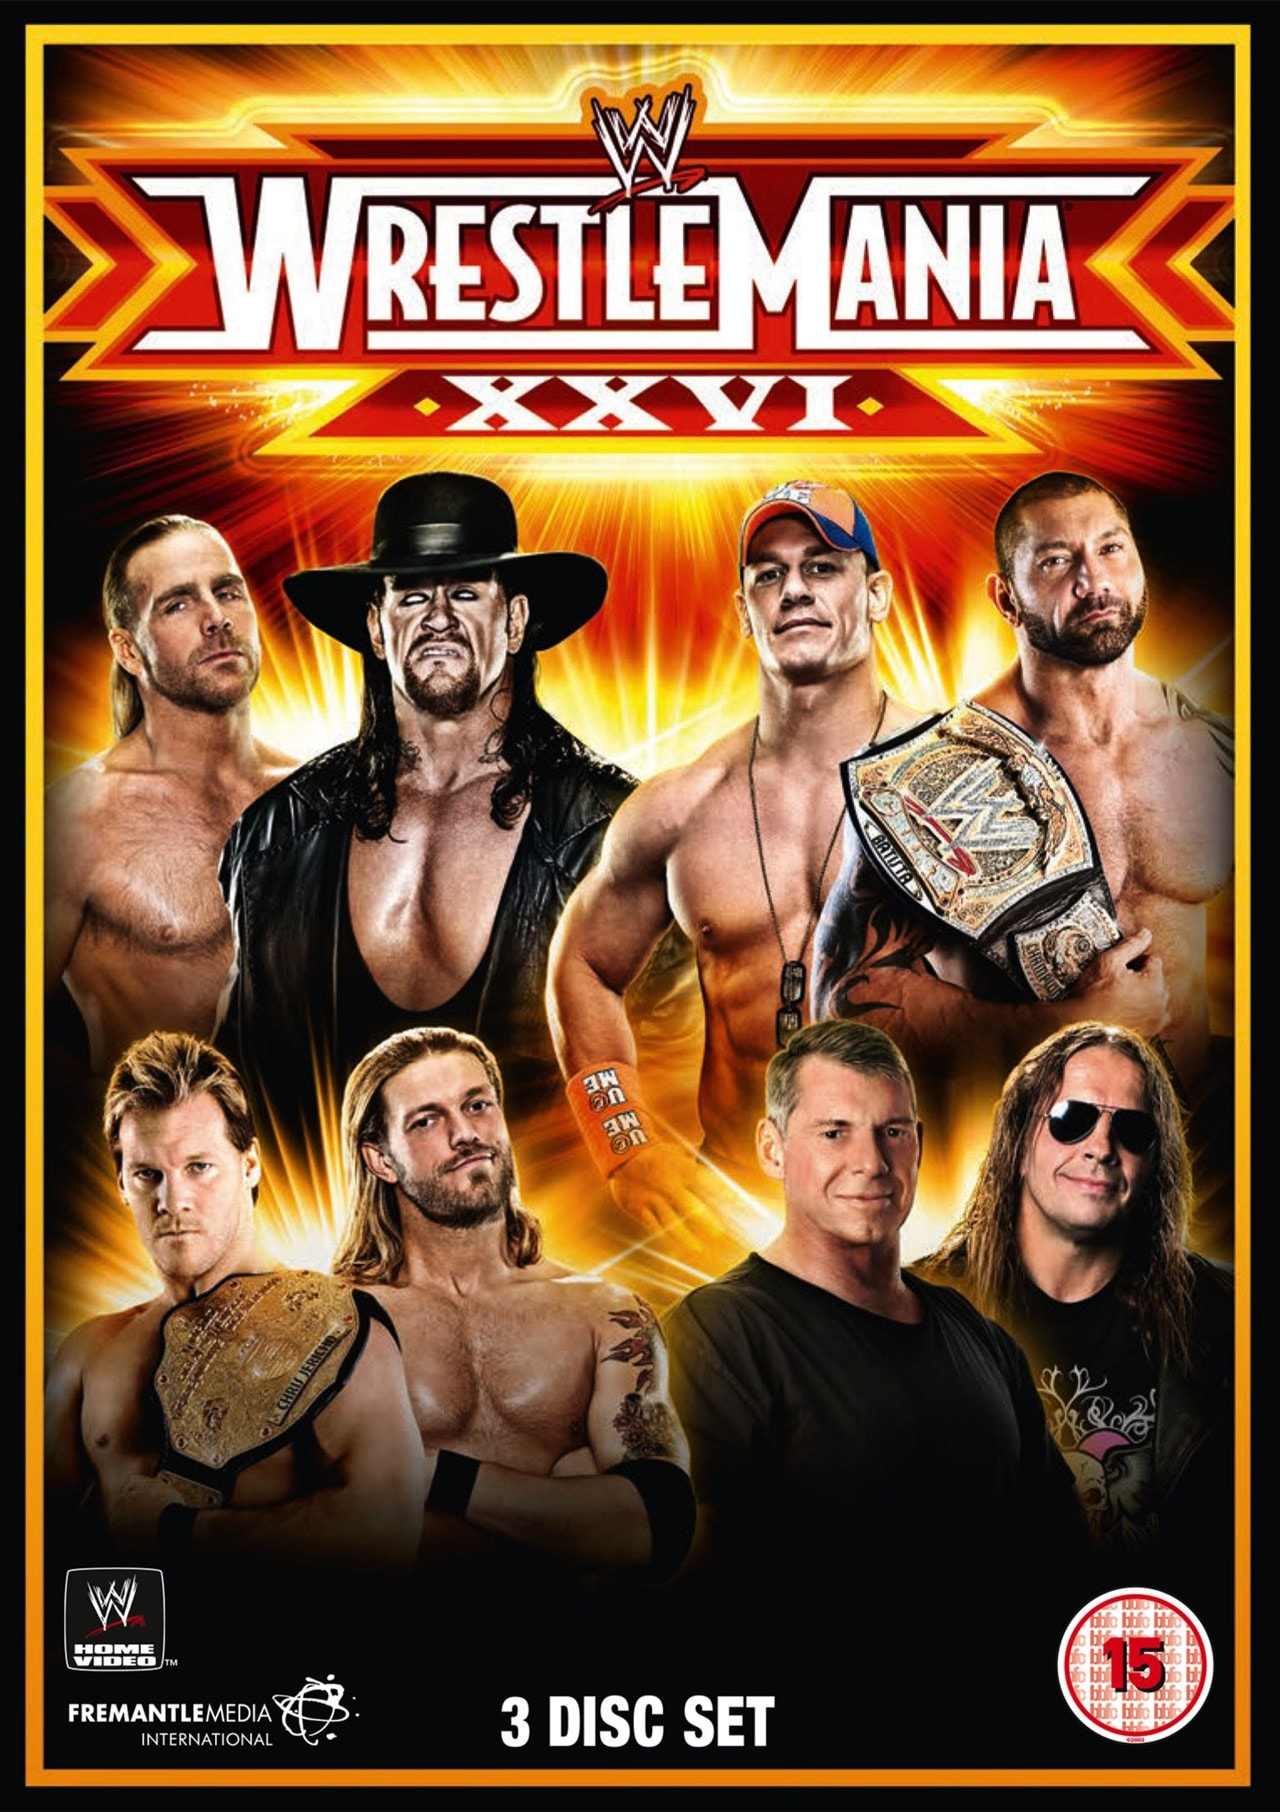 WWE: Wrestlemania 26 - 1